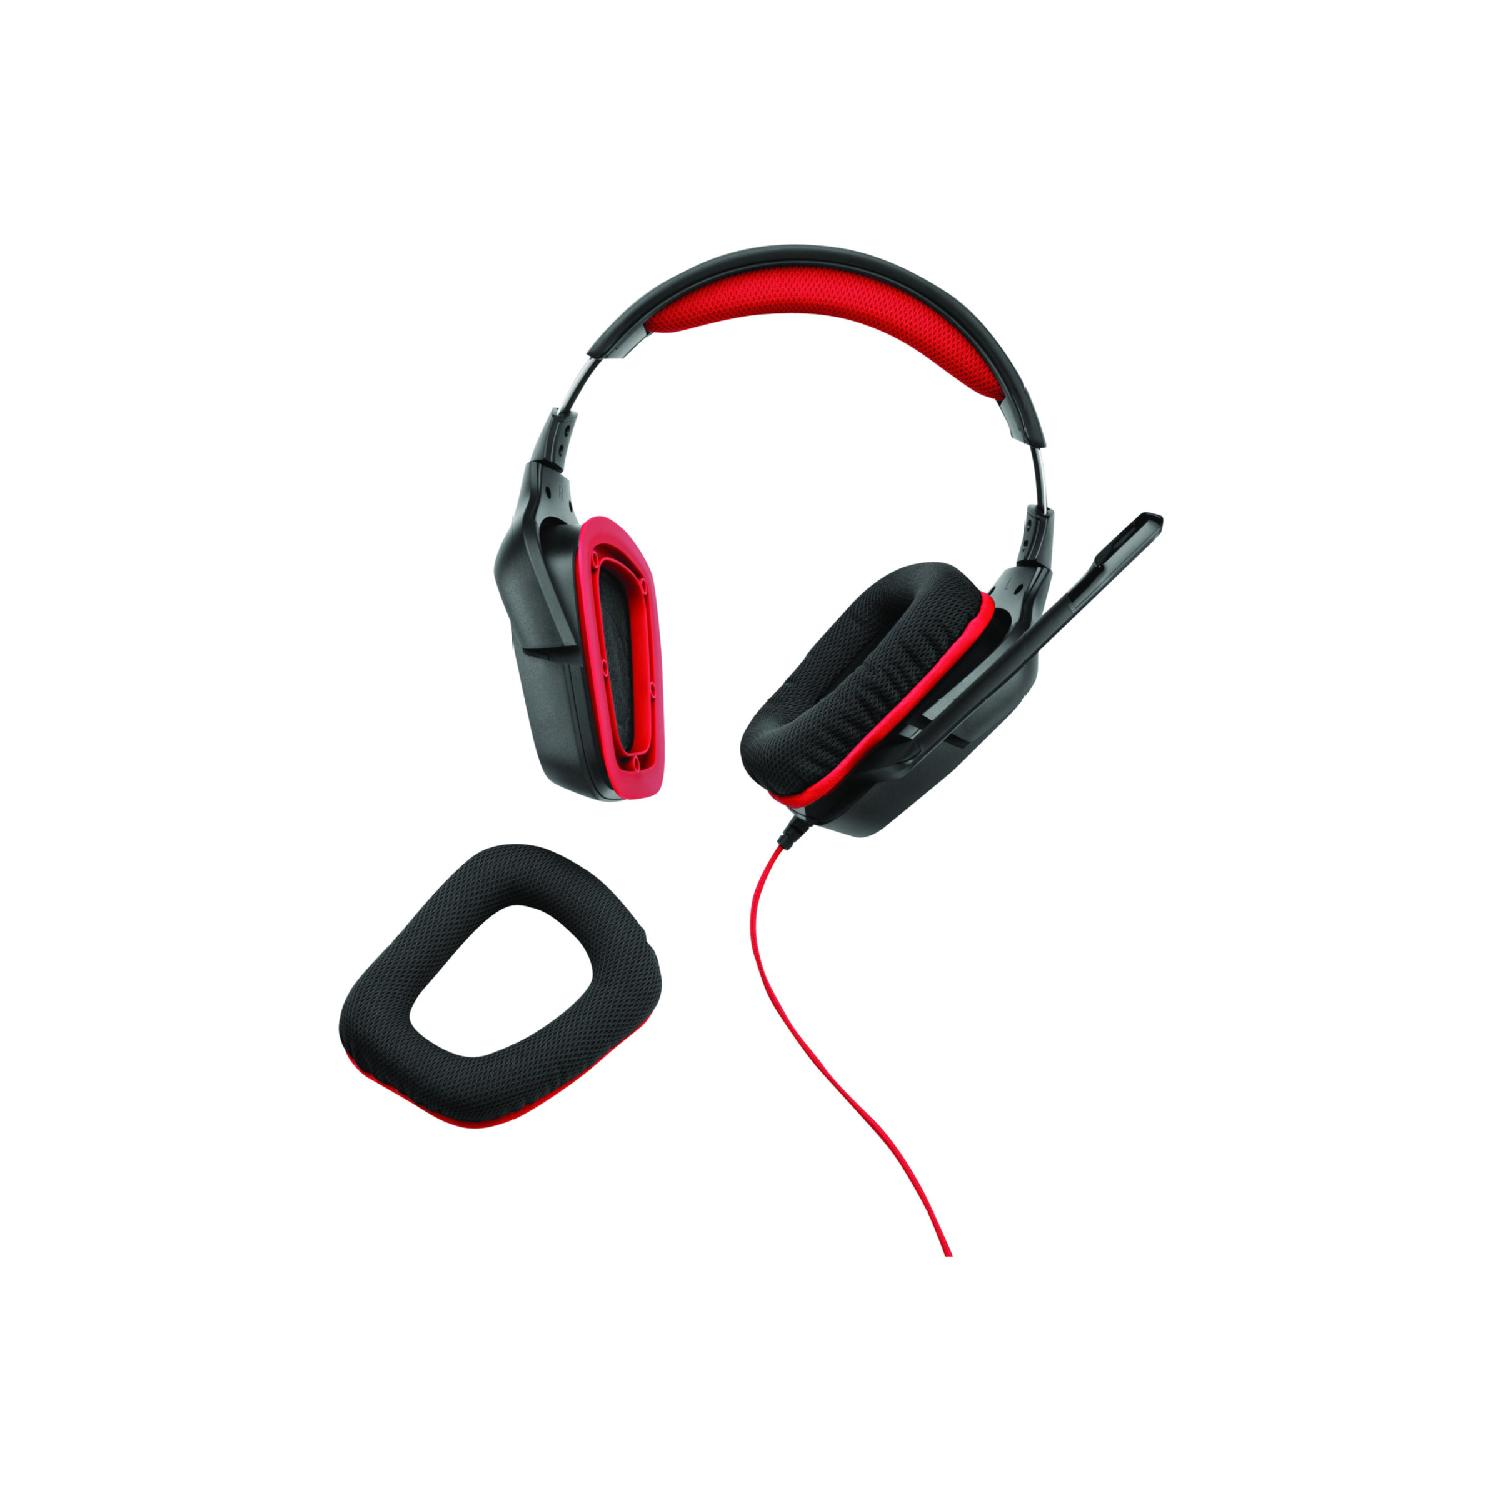 981-000541 Logitech G230 Stereo Gaming Noise-cancelling Wired Headset